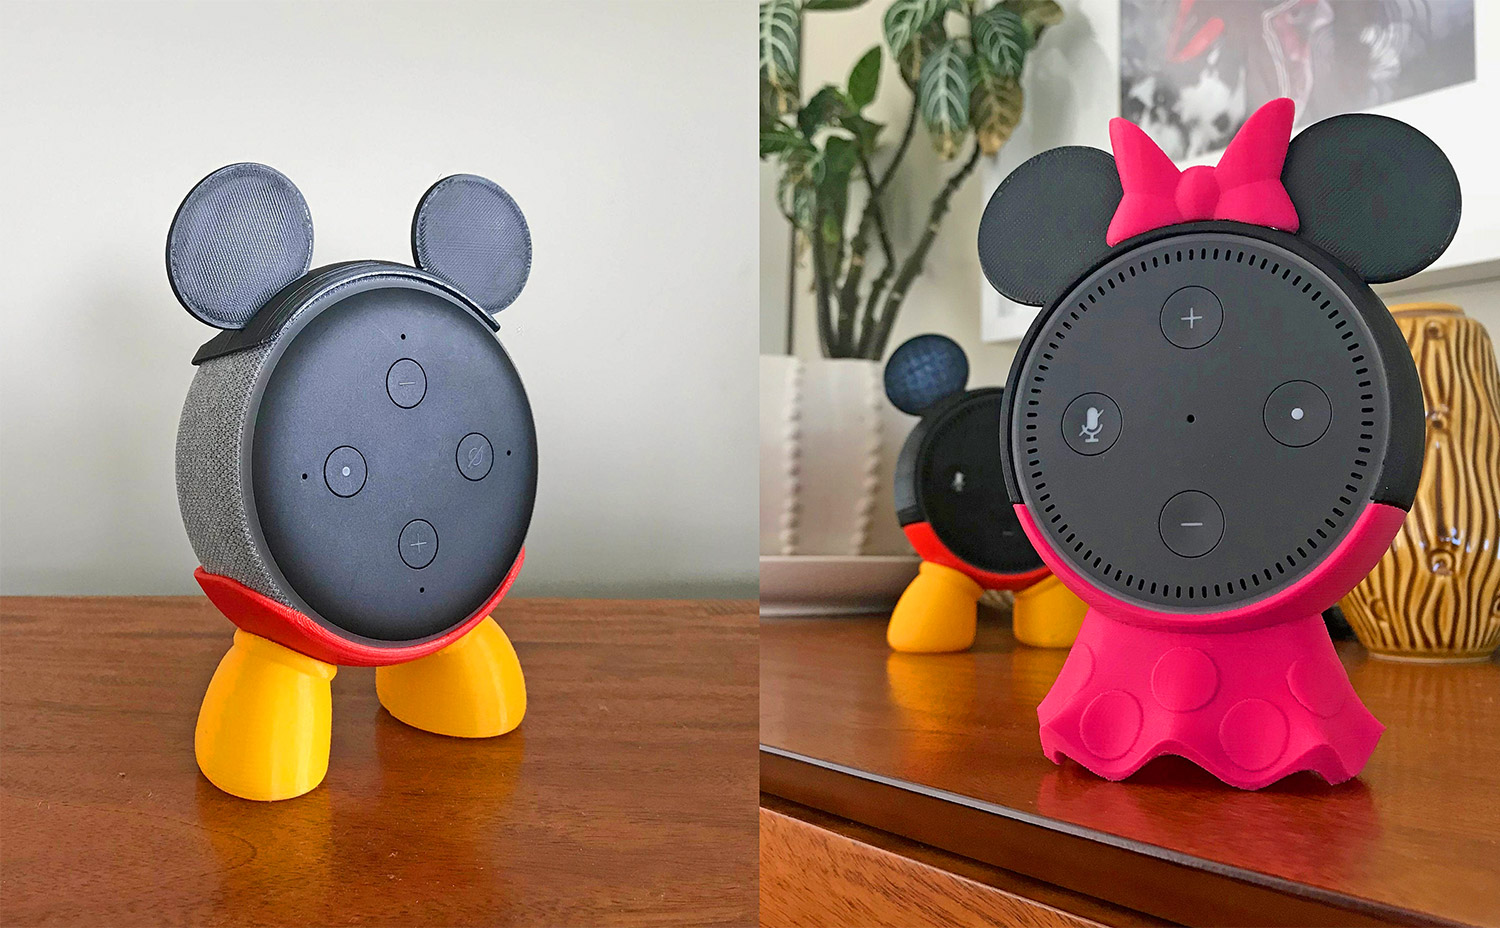 3D Printed Smart Speaker Holder Turns Your Amazon Echo Dot Into Mickey Or Minnie Mouse